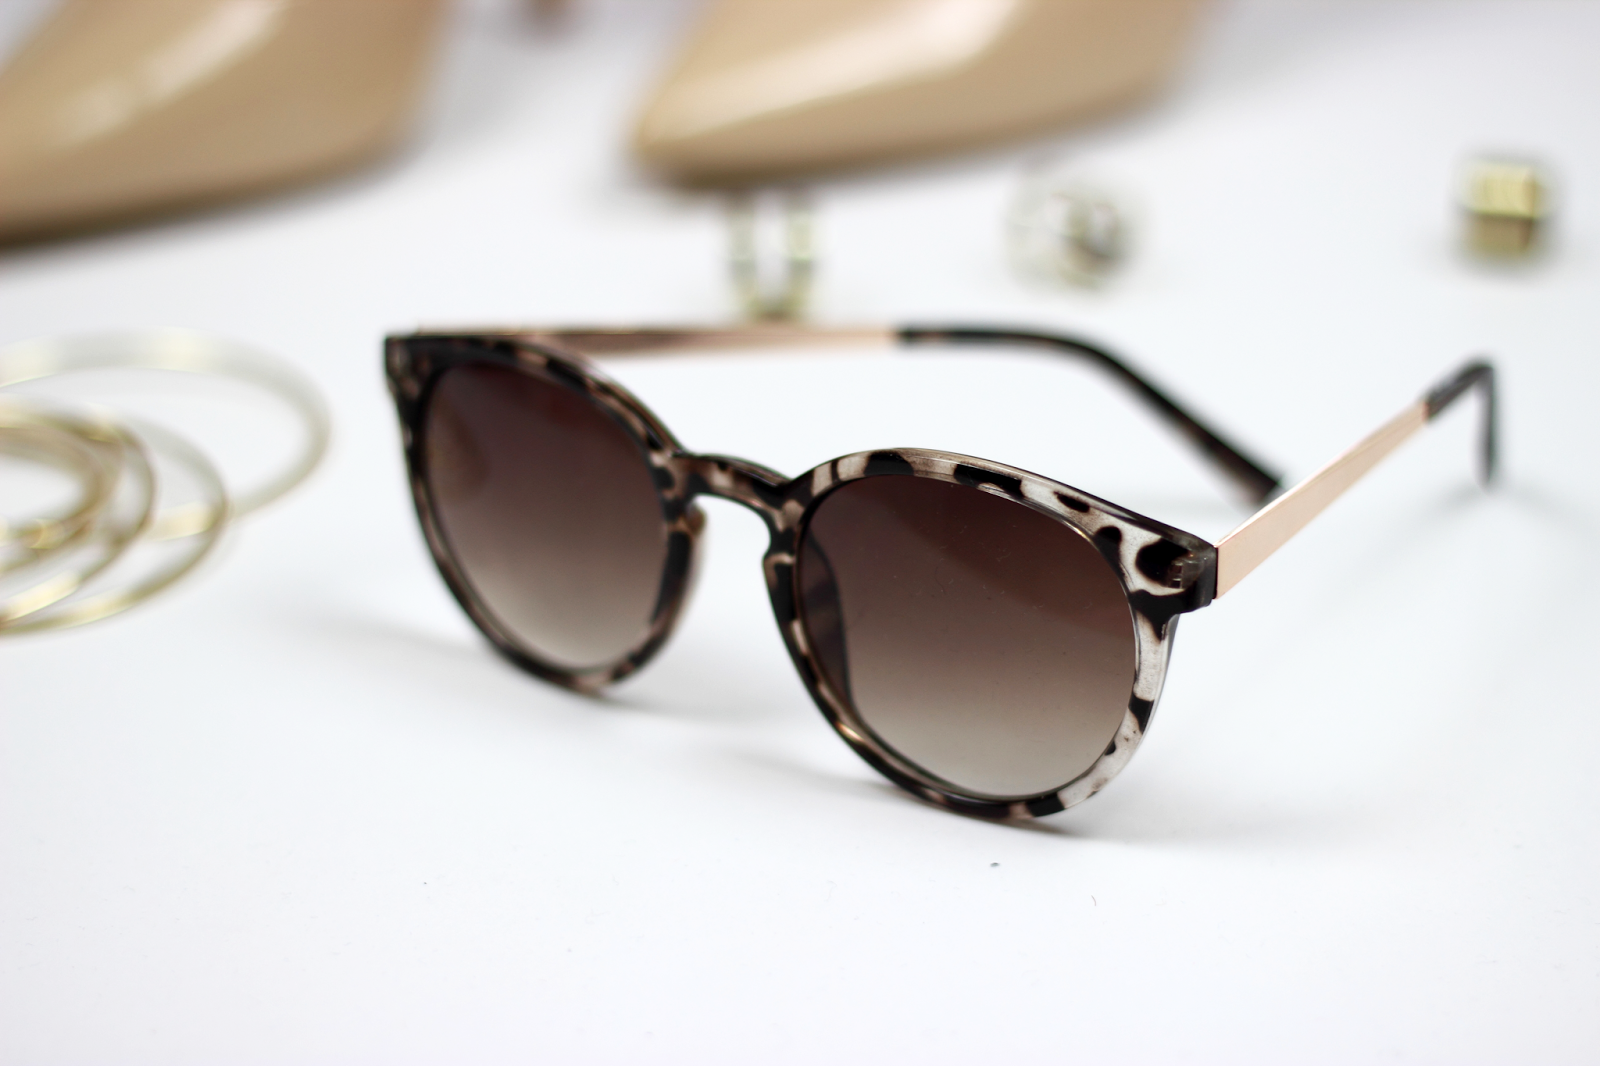 beautyblogger, fashionblogger,lifestyleblogger, beauty blogger, fashion blogger, lifestyle blogger, cosmopolitan uk, new look, justfab, mac, netaporter, pointy heels, blusher, sunglasses, spring, summer